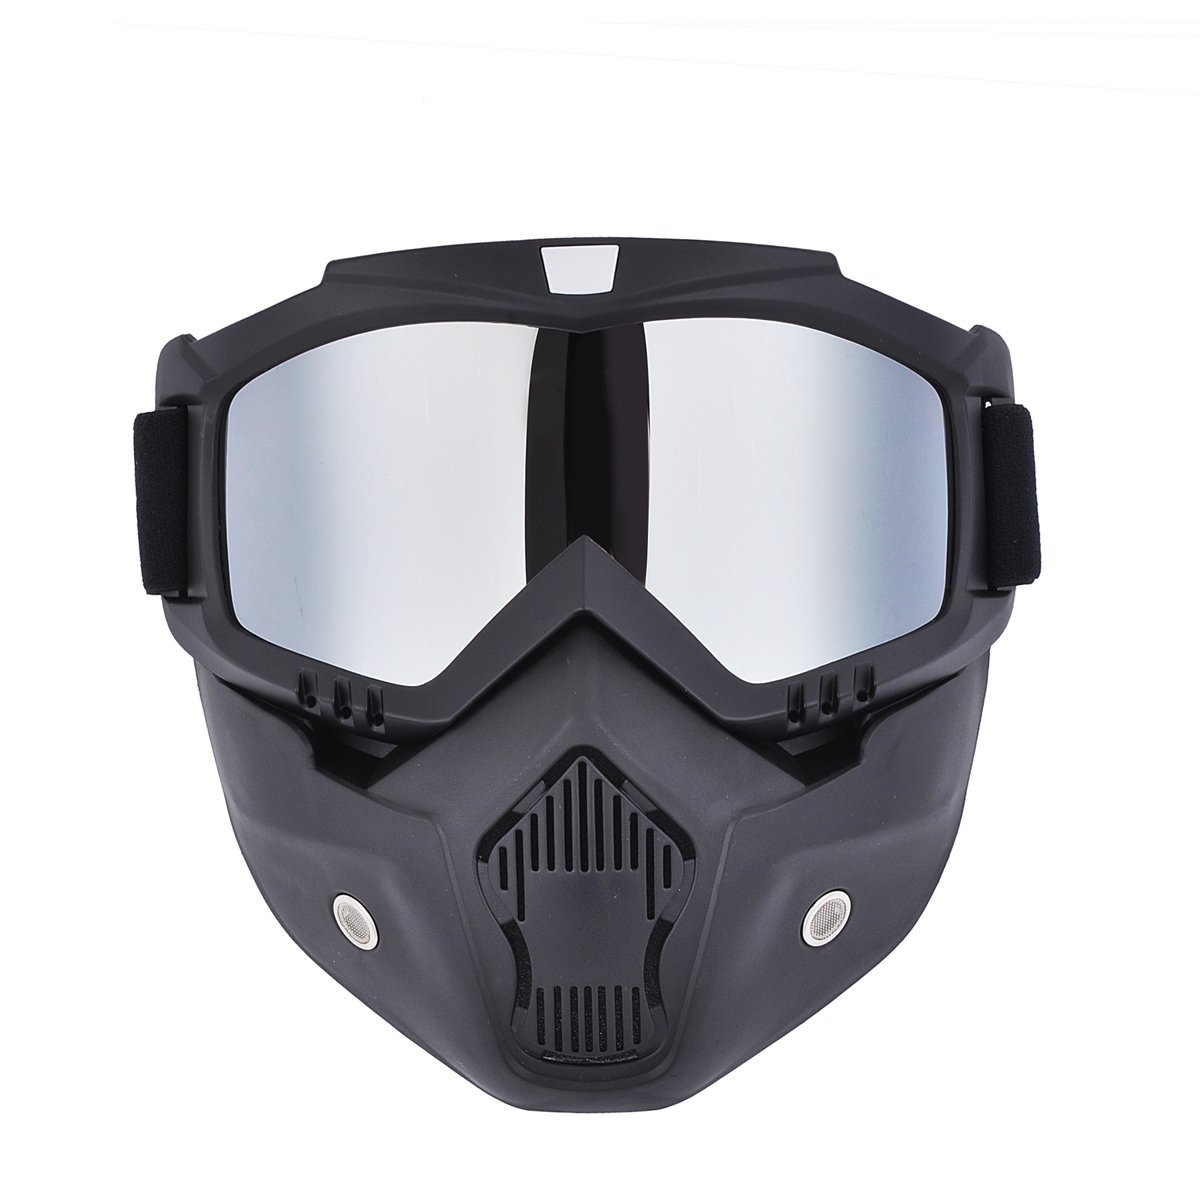 d985675b72 Amazon.com  CHCYCLE motorcycle motocross face mask with detachable Goggles(silver)   Automotive